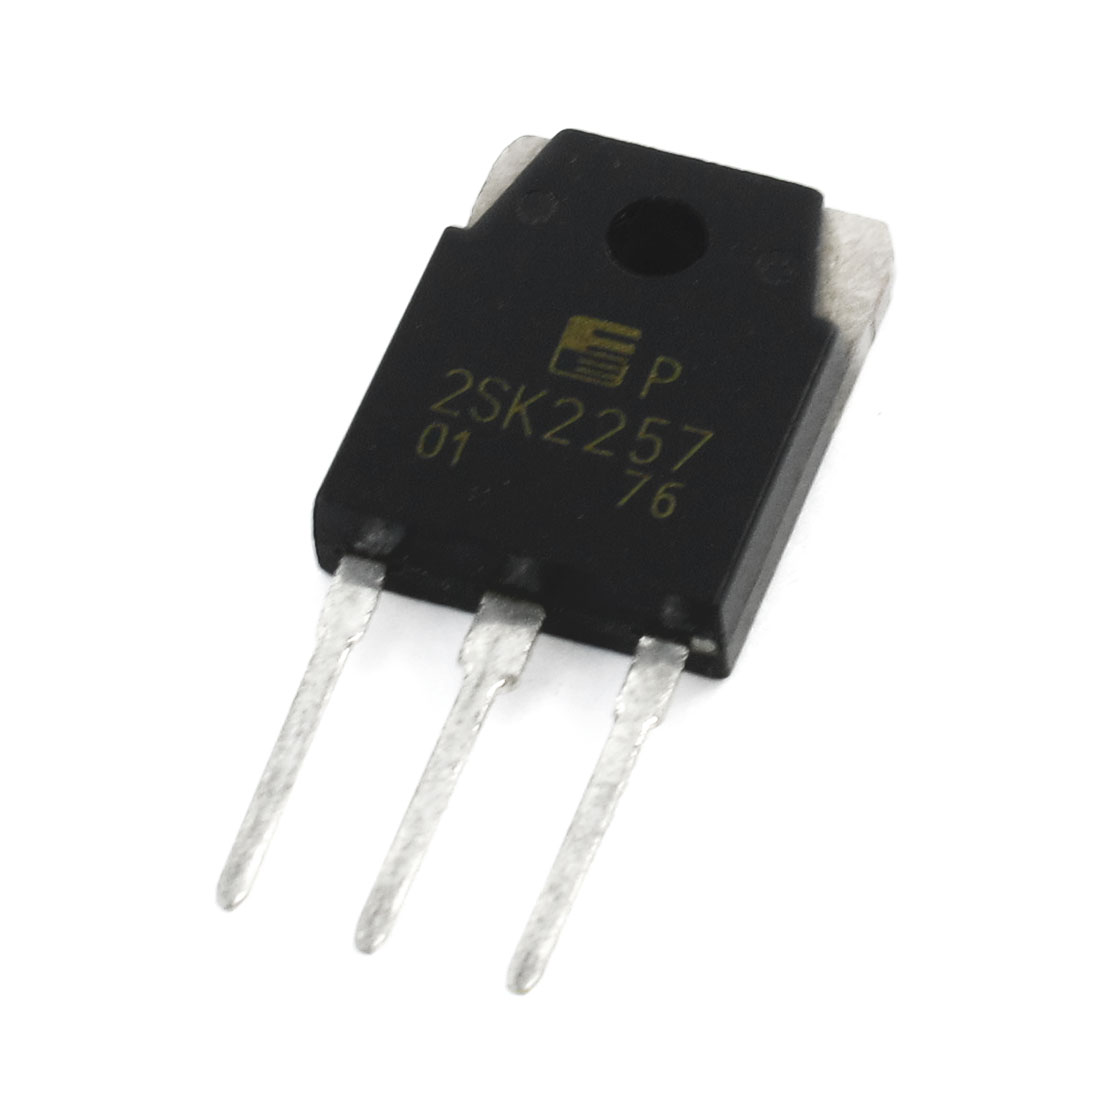 N Channel Mosfet 500V 17A 3 Pin Silicon Transistor 2SK2257